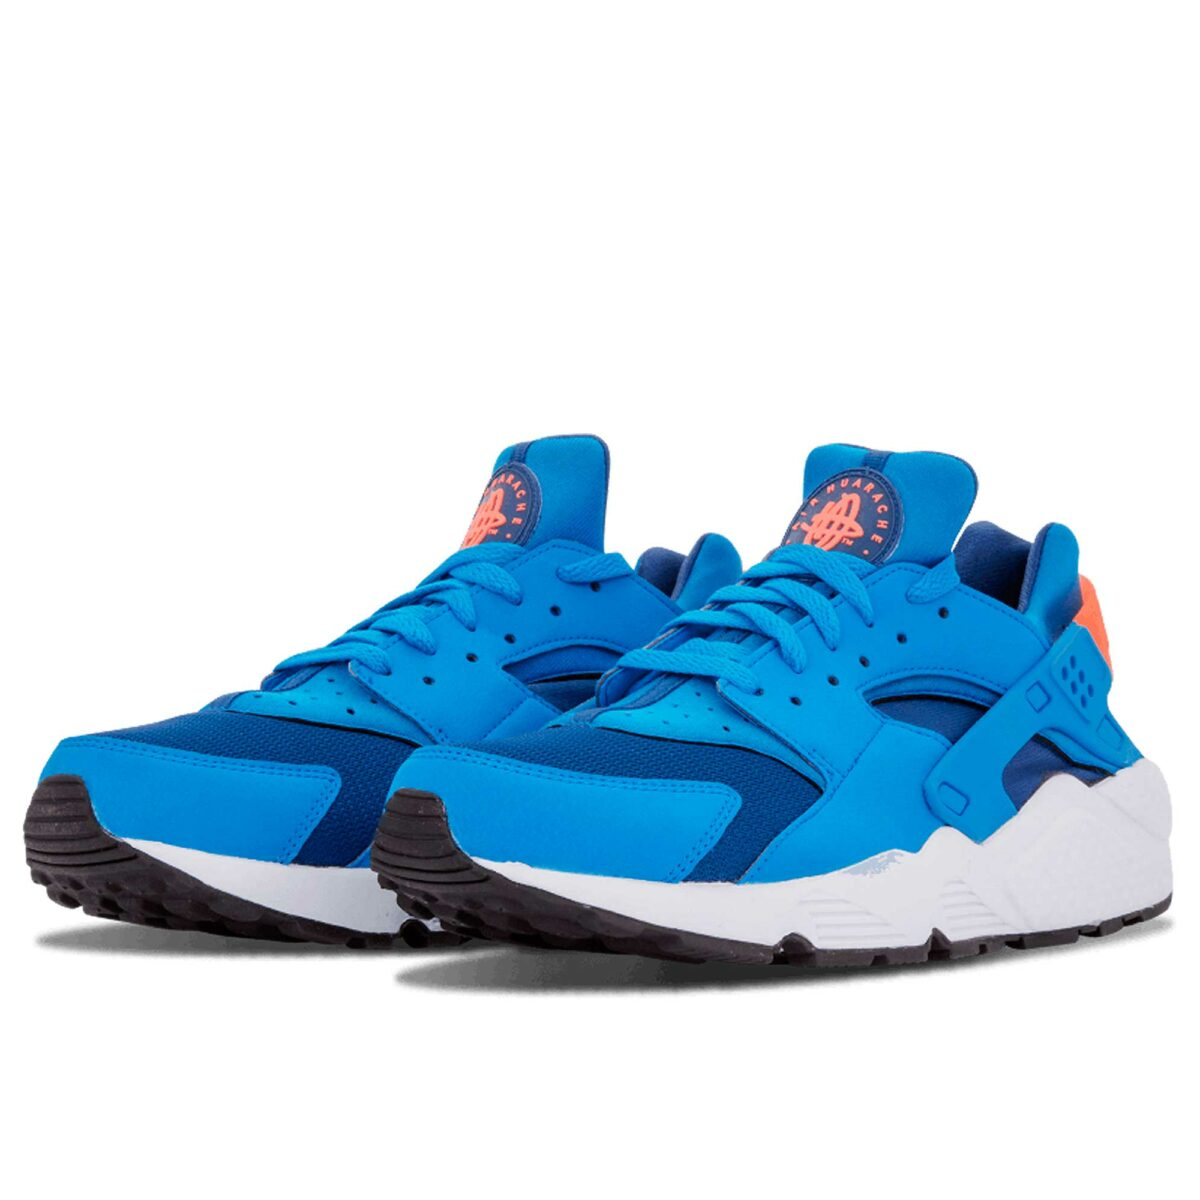 nike air huarache gym blue 318429_402 купить